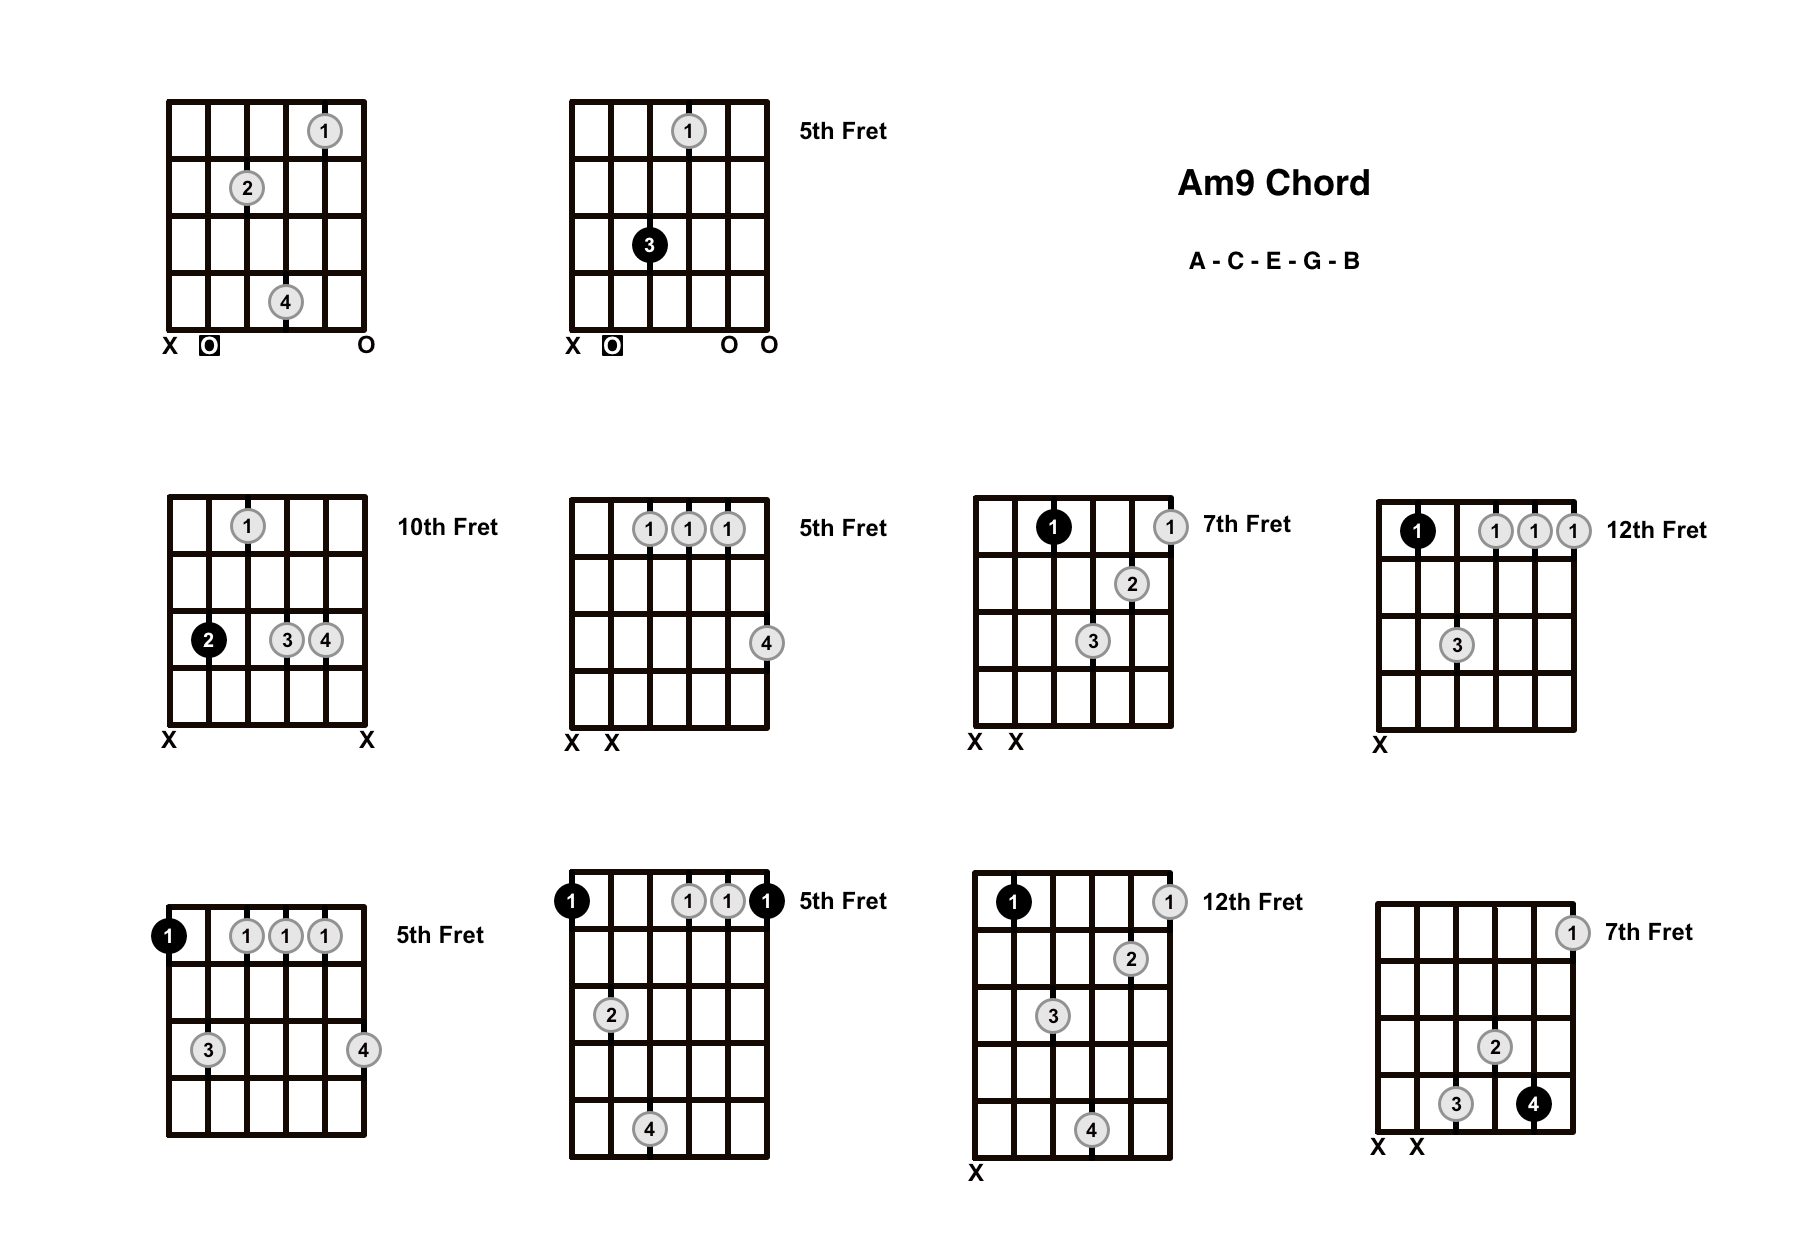 Am9 Chord On The Guitar (A Minor 9) – Diagrams, Finger Positions and Theory